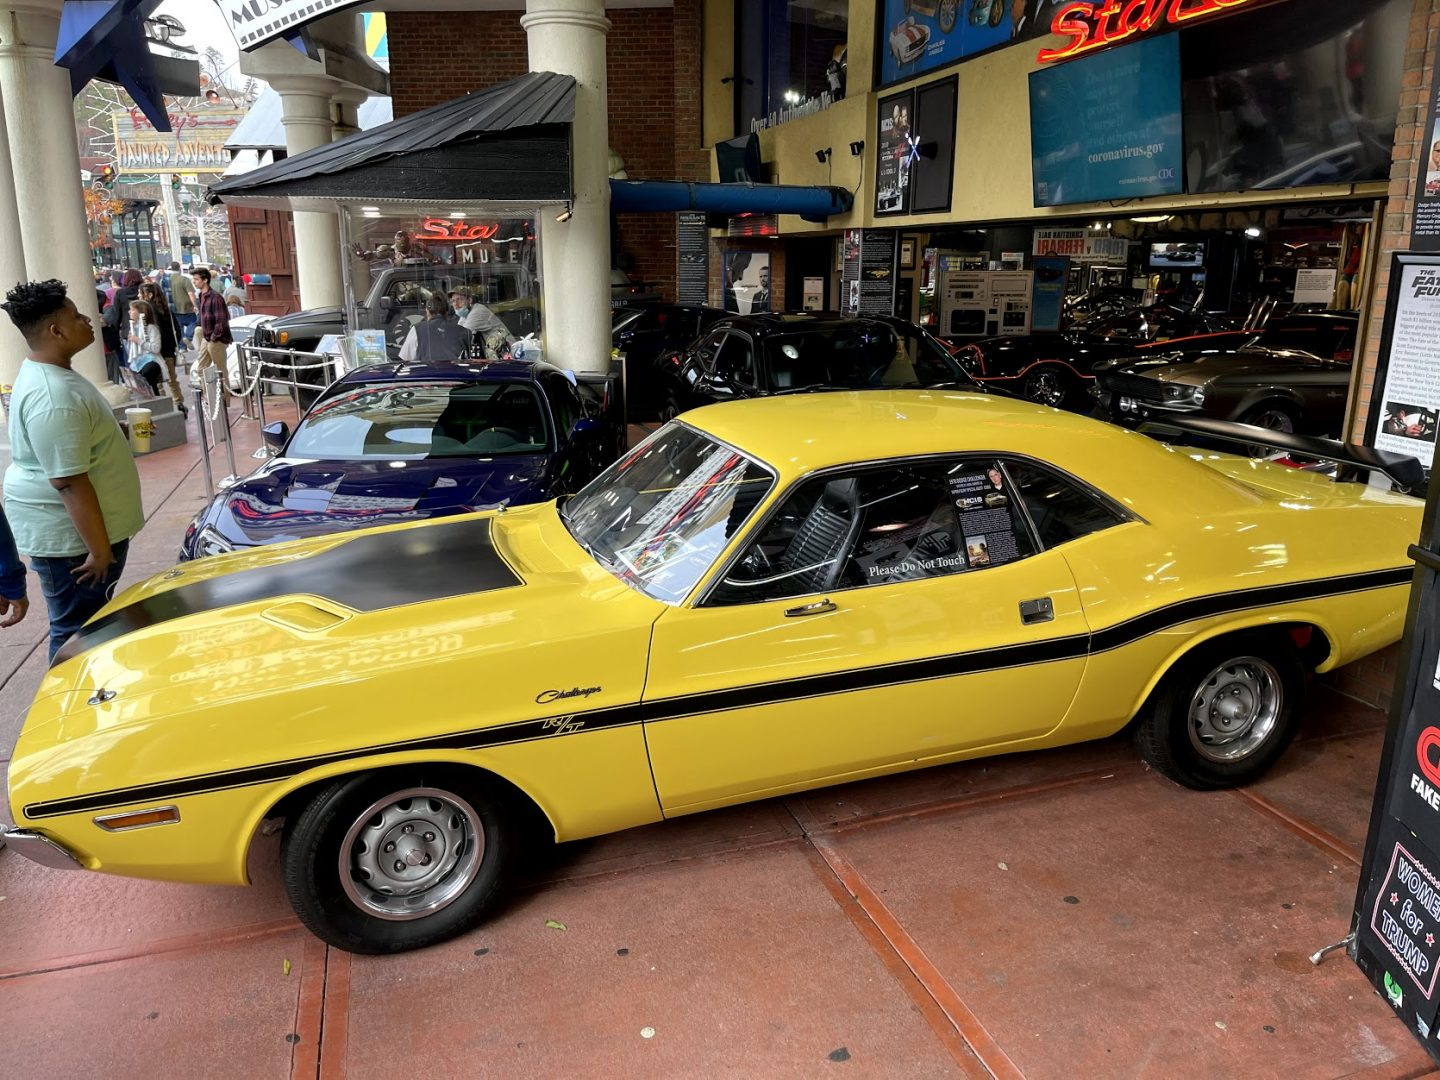 Hollywood Star Cars Museum in downtown Gatlinburg, Tennessee